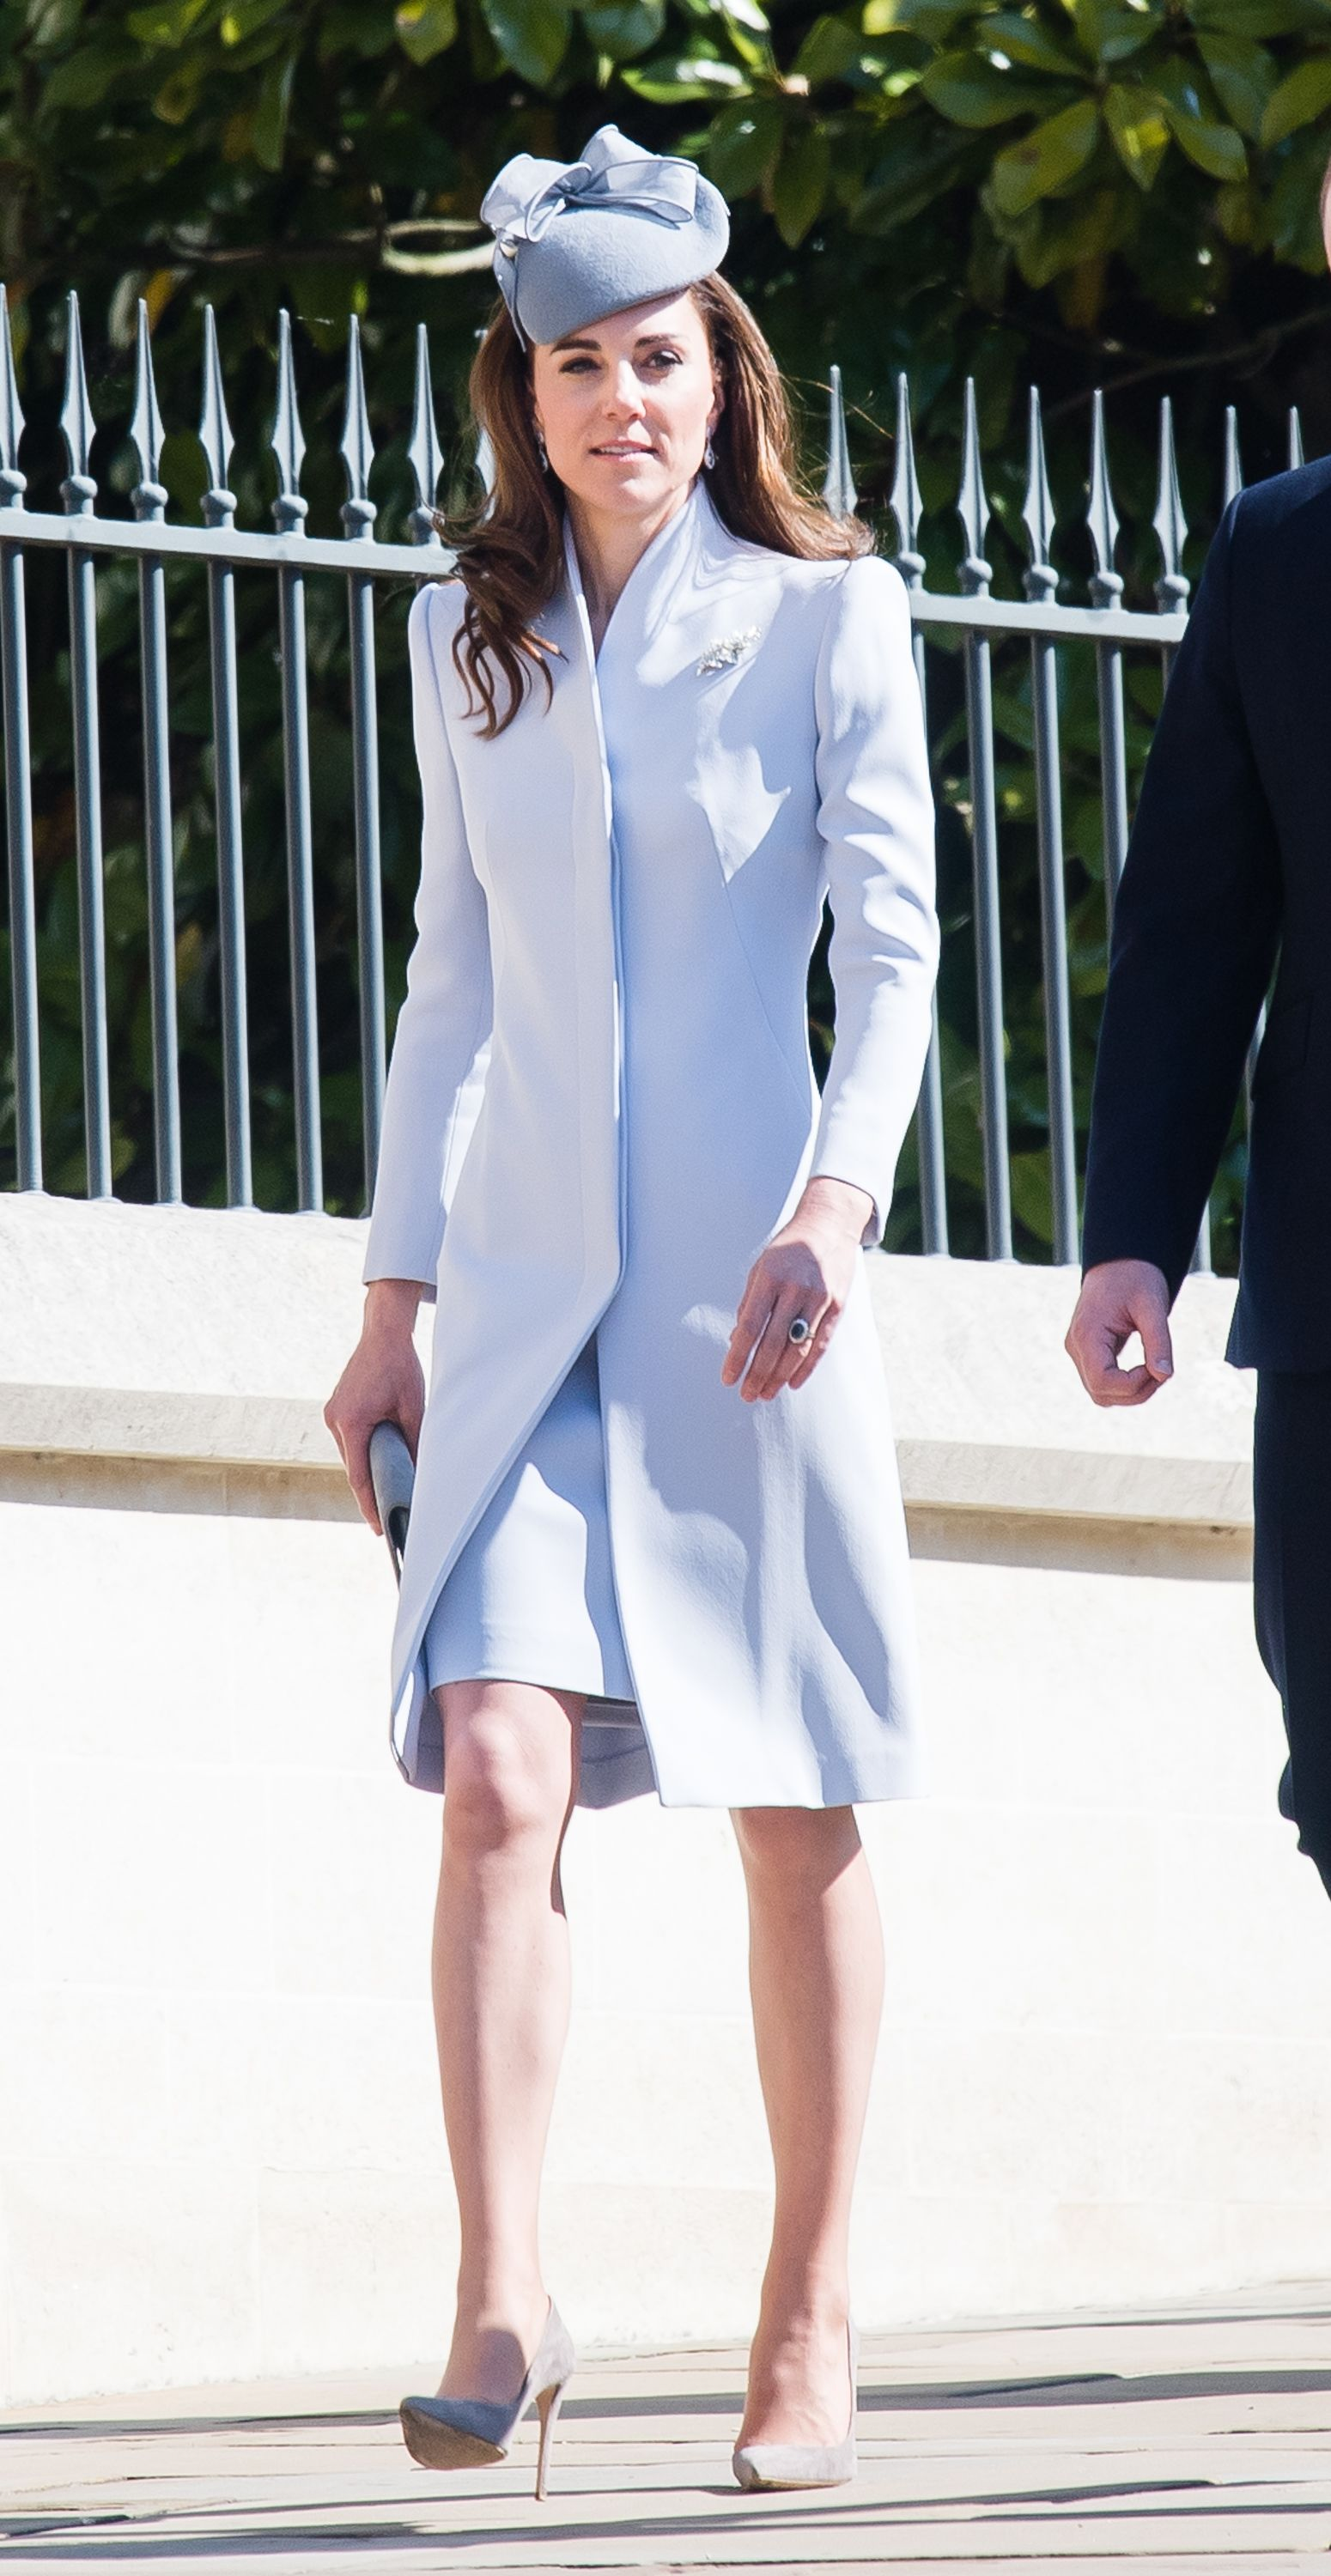 Kate Middleton Stuns in Baby Blue Ensemble at Easter Sunday Service on the Queen's Birthday